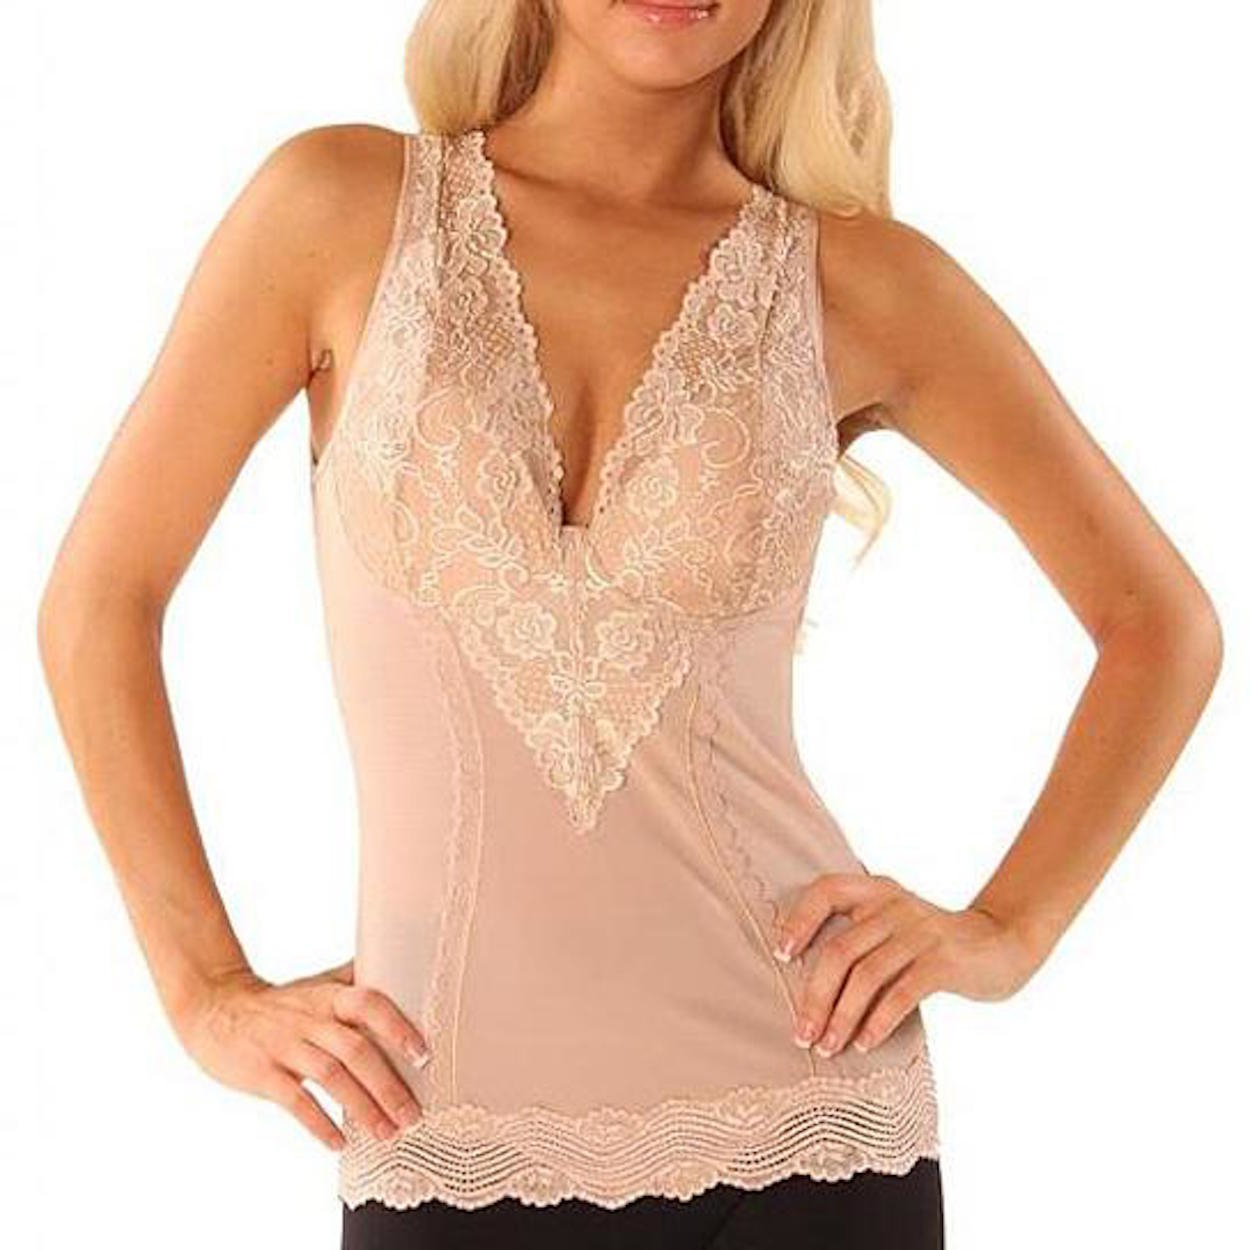 Curvaceous Lace Shaping Camisole - Nude, S 5977fde86d88eb42914f191e